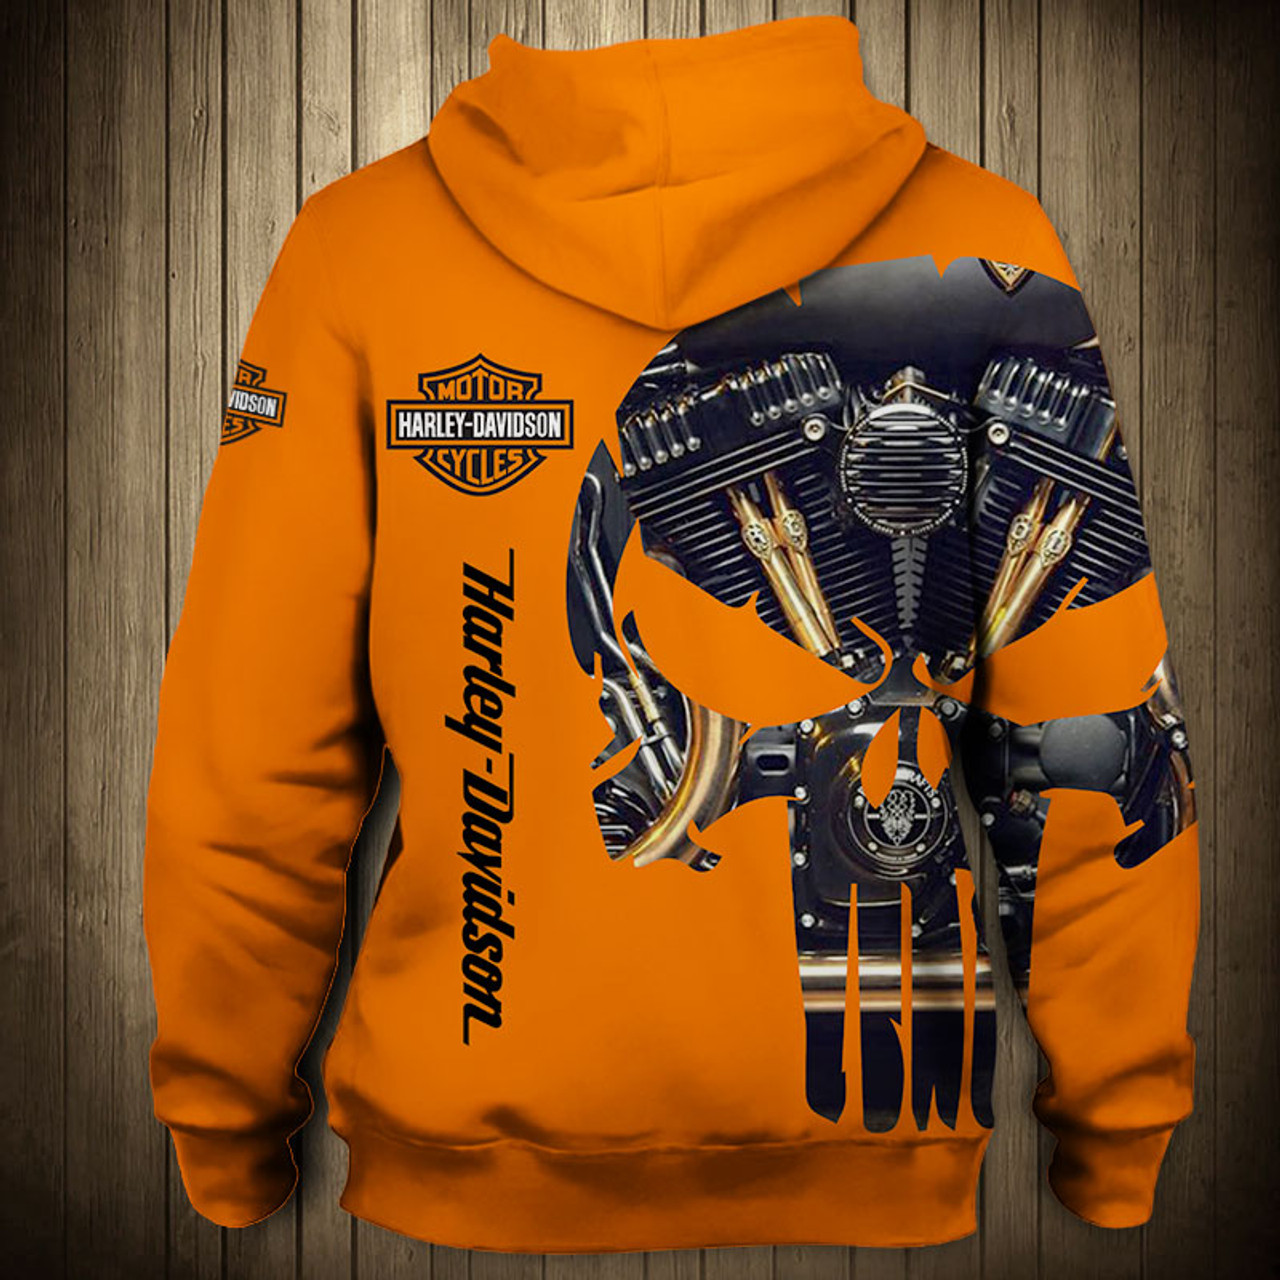 **(OFFICIAL-HARLEY-DAVIDSON-MOTORCYCLE-ZIPPERED-HOODIE/CUSTOM-DETAILED-3D-GRAPHIC-PRINTED-PUNISHER-SKULL-ENGINE-DESIGN/FEATURING-OFFICIAL-CUSTOM-HARLEY-3D-LOGOS & OFFICIAL-CLASSIC-HARLEY-ORANGE-COLORS/WARM-PREMIUM-HARLEY-RIDING-ZIPPERED-HOODIES)**